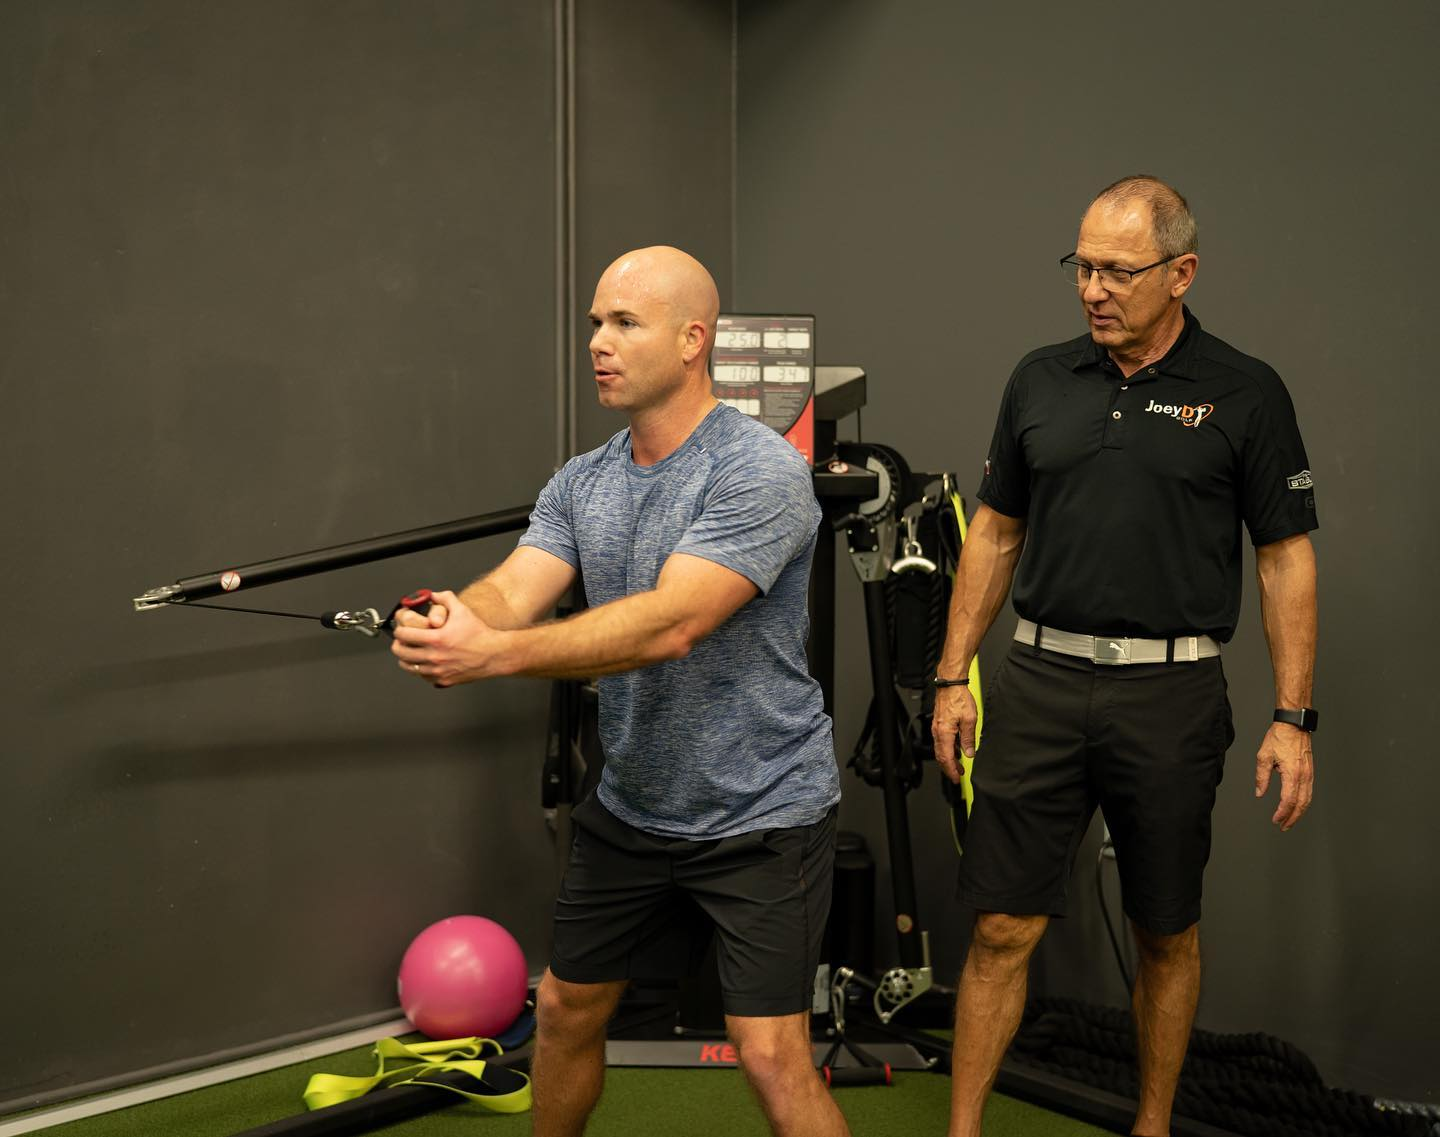 golf fitness assessment exercises